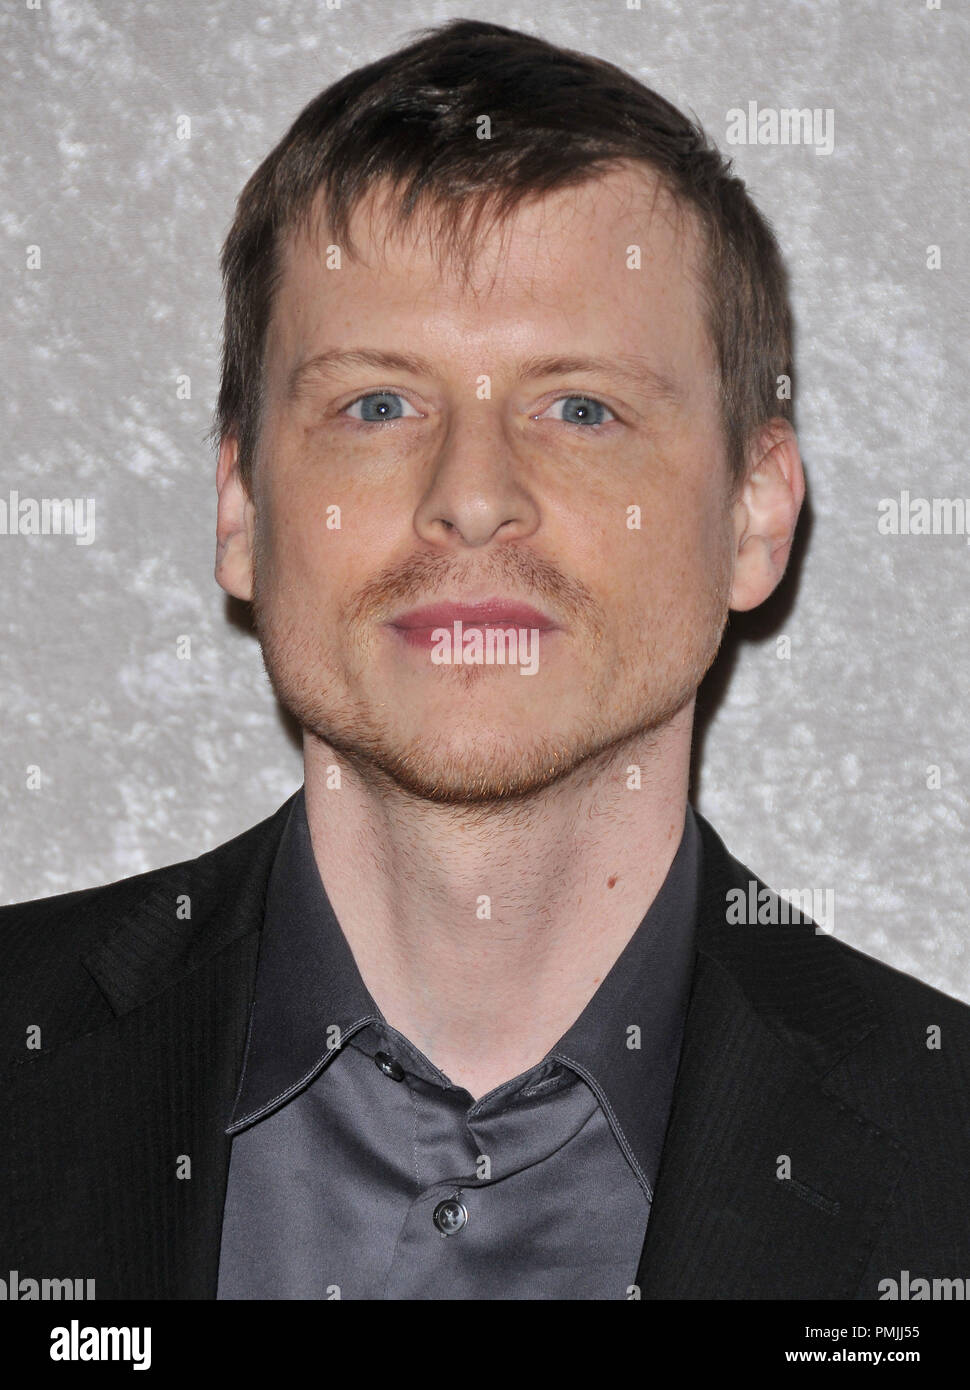 Kevin Rankin at HBO's 'Big Love' Season 5 Premiere held at the Directors Guild Of America in Los Angeles, CA. The event took place on Wednesday, January 12, 2011. Photo by PRPP_Pacific Rim Photo Press / PictureLux - Stock Image